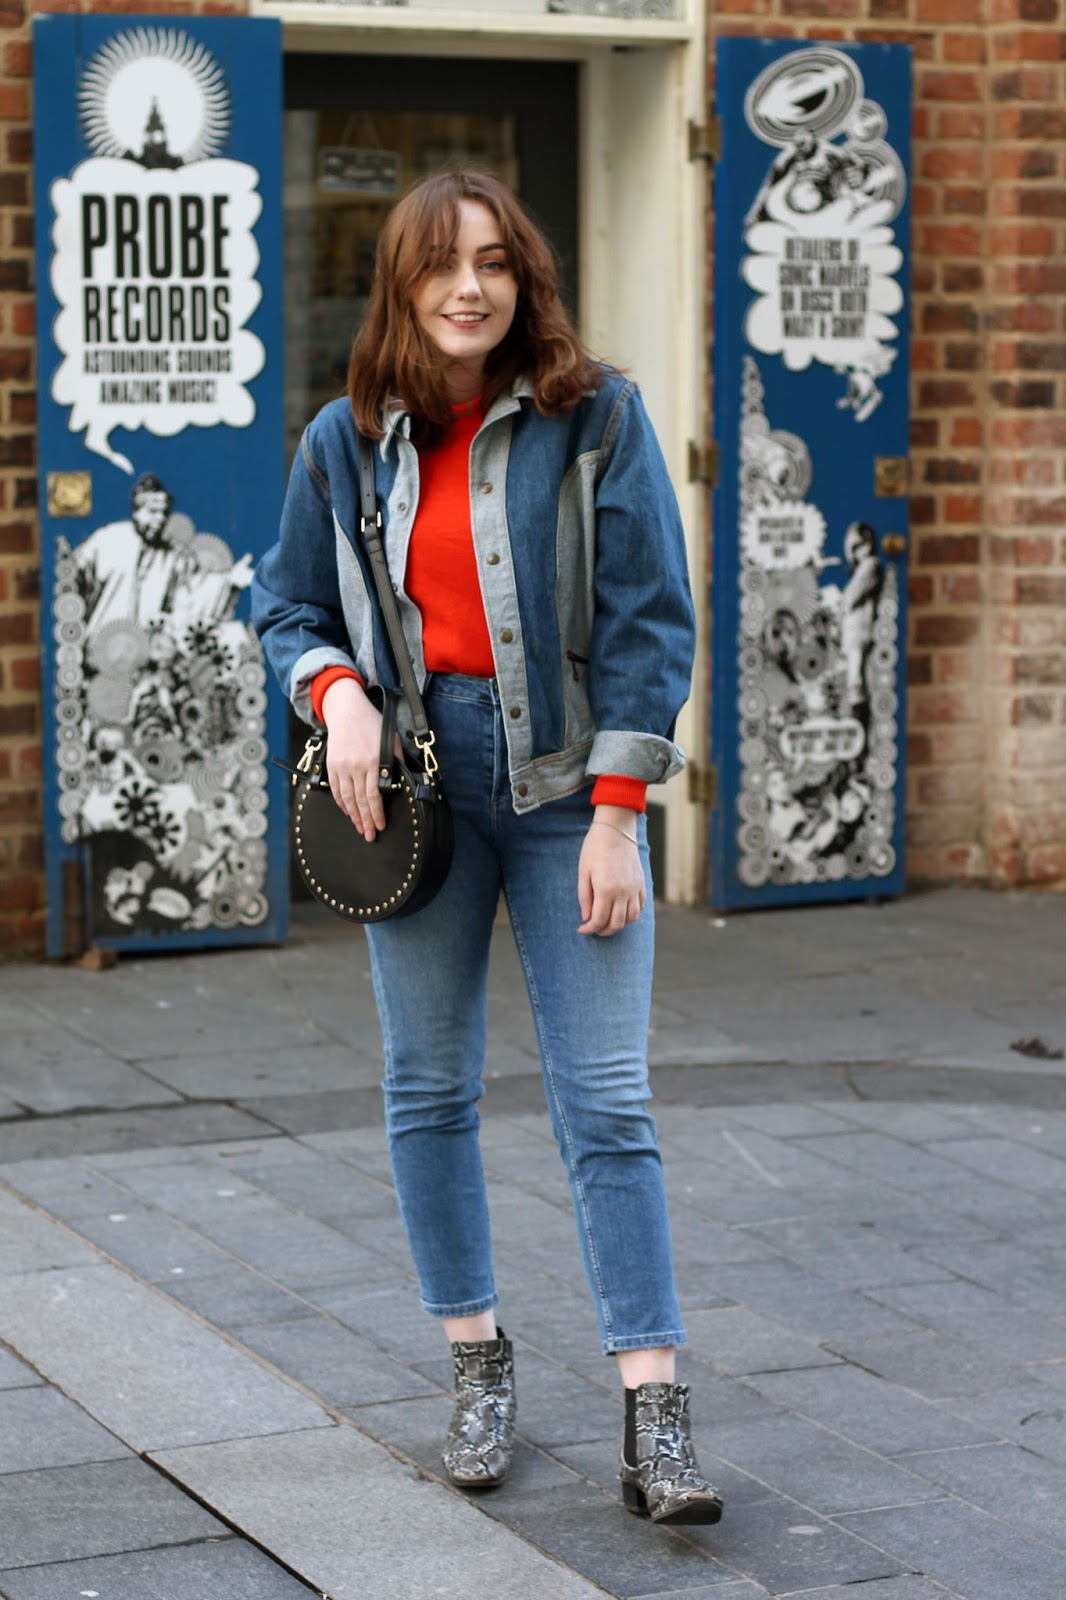 double denim with jacket and blue jeans paired with orange turtleneck jumper, black studded cross body bag and snake print ankle boots for western ss18 trend